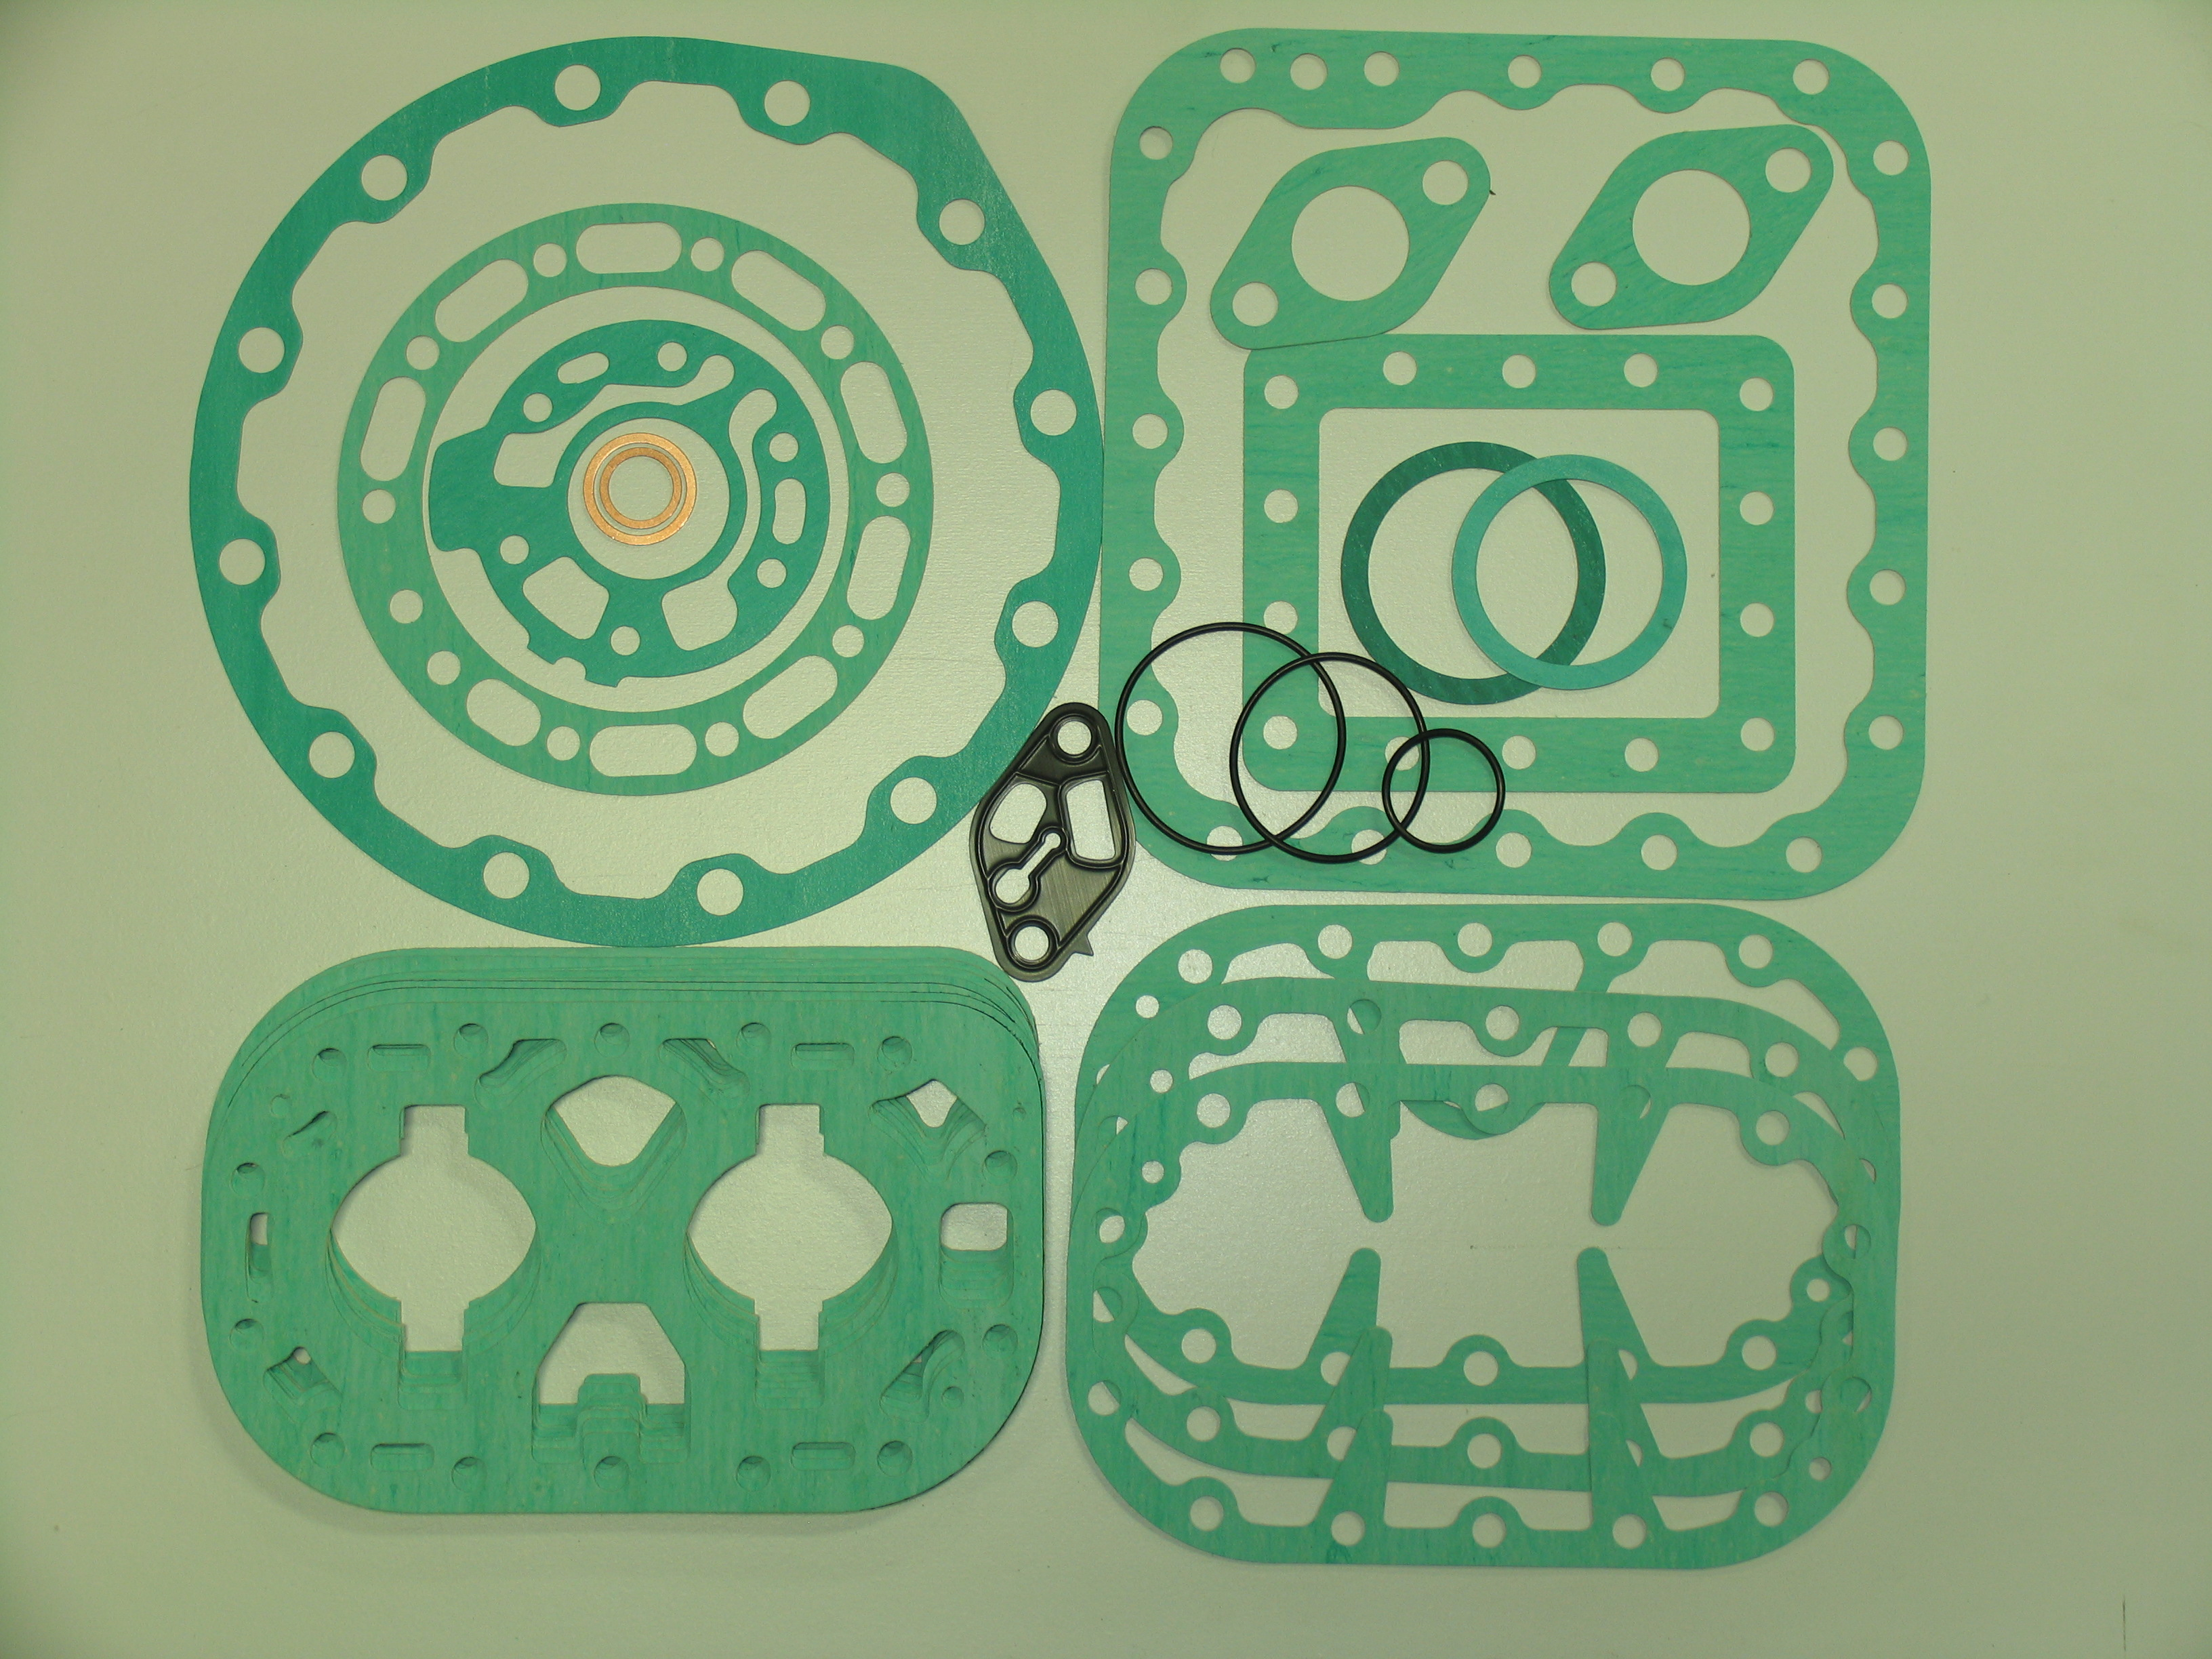 KIT-5317 Gasket Kit; R/N 998-1669-00 ALL 4D MODELS